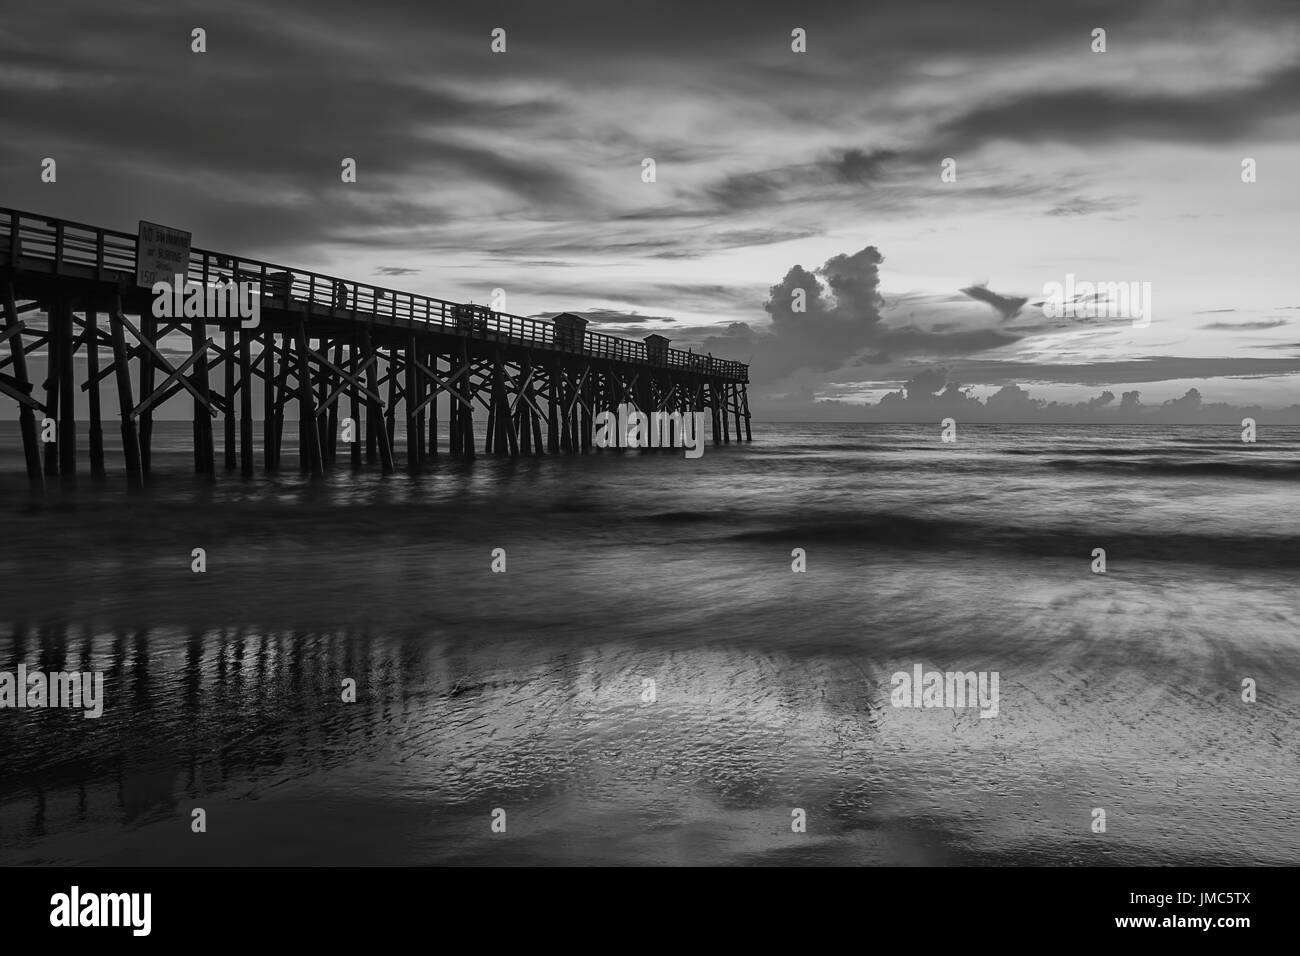 A B&W image of sunrise over the Atlantic Ocean at the pier in Flagler Beach, Florida. - Stock Image